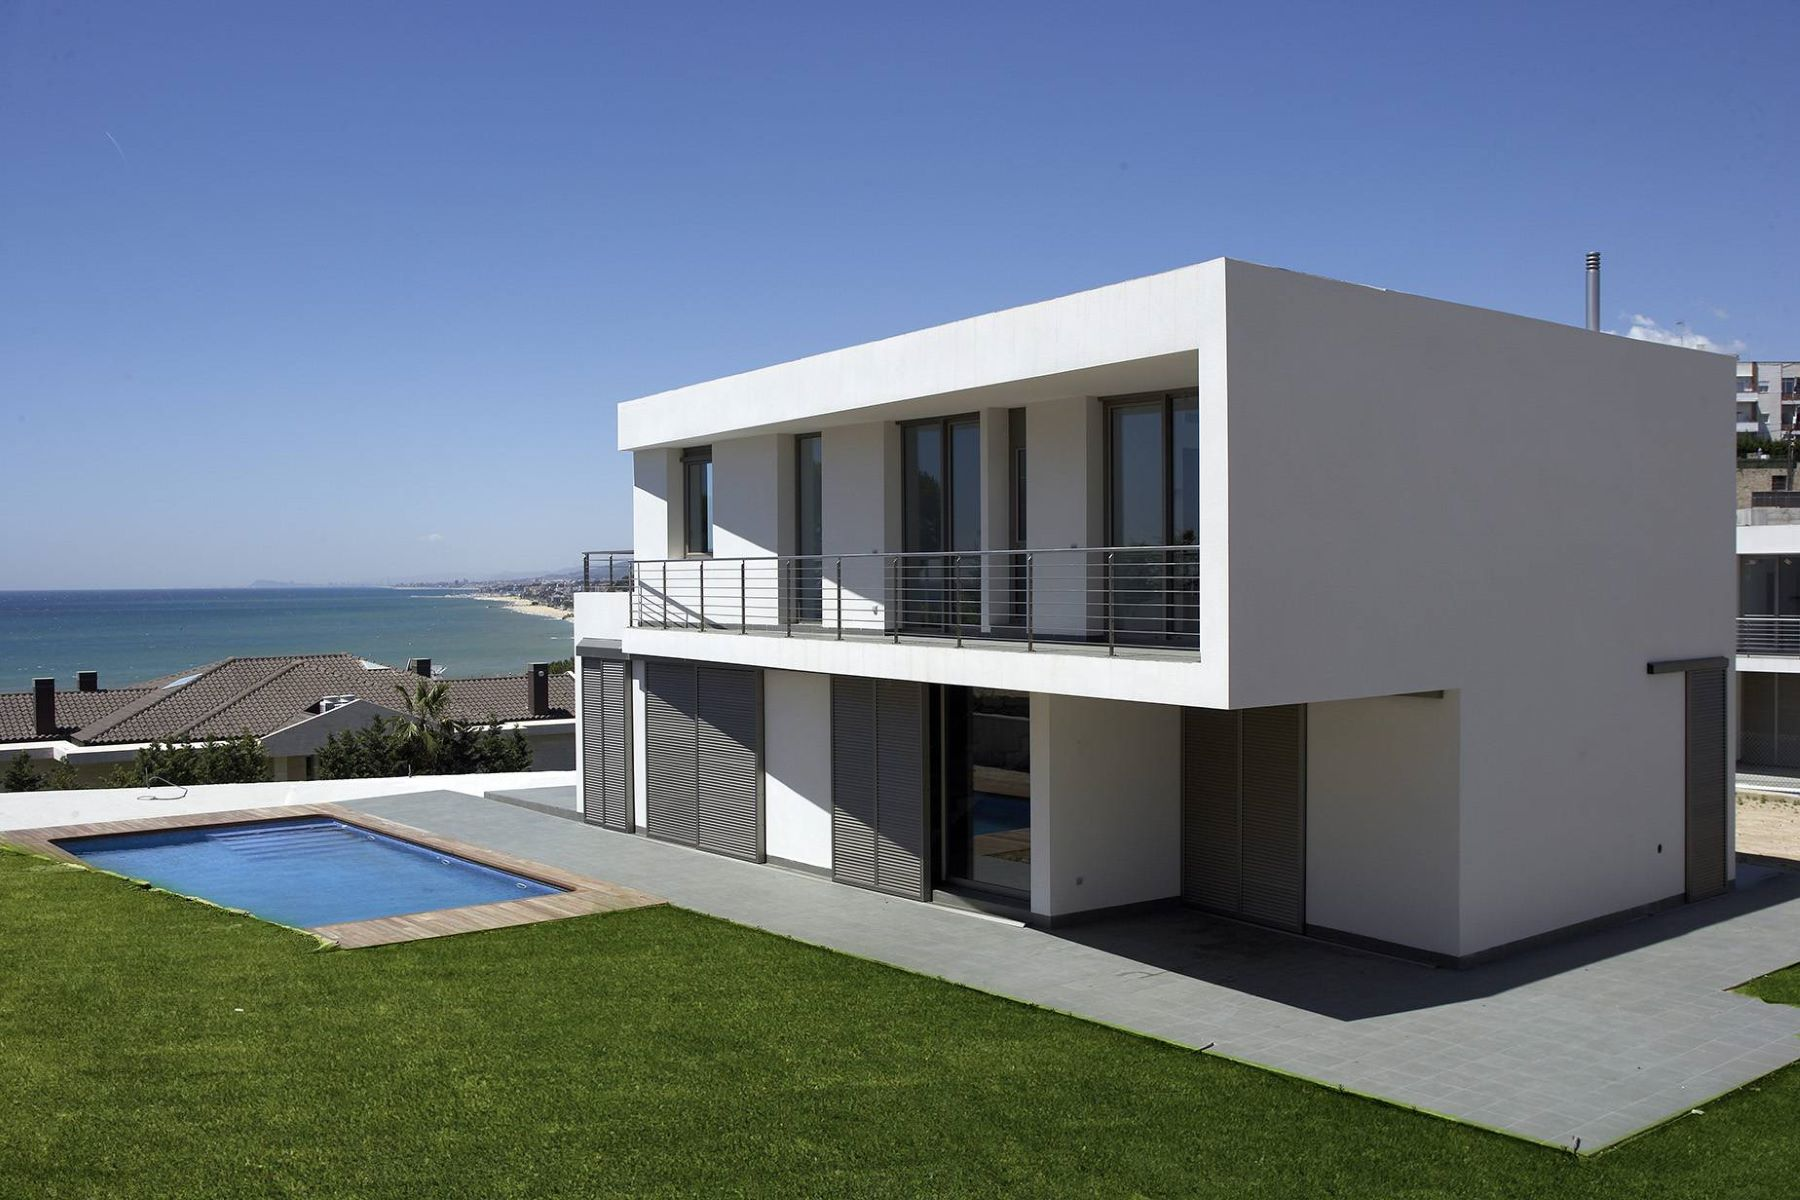 Single Family Home for Sale at Architecture and Design with Sea Views in Arenys Other Cities Barcelona North Coast, Barcelona, 08328 Spain